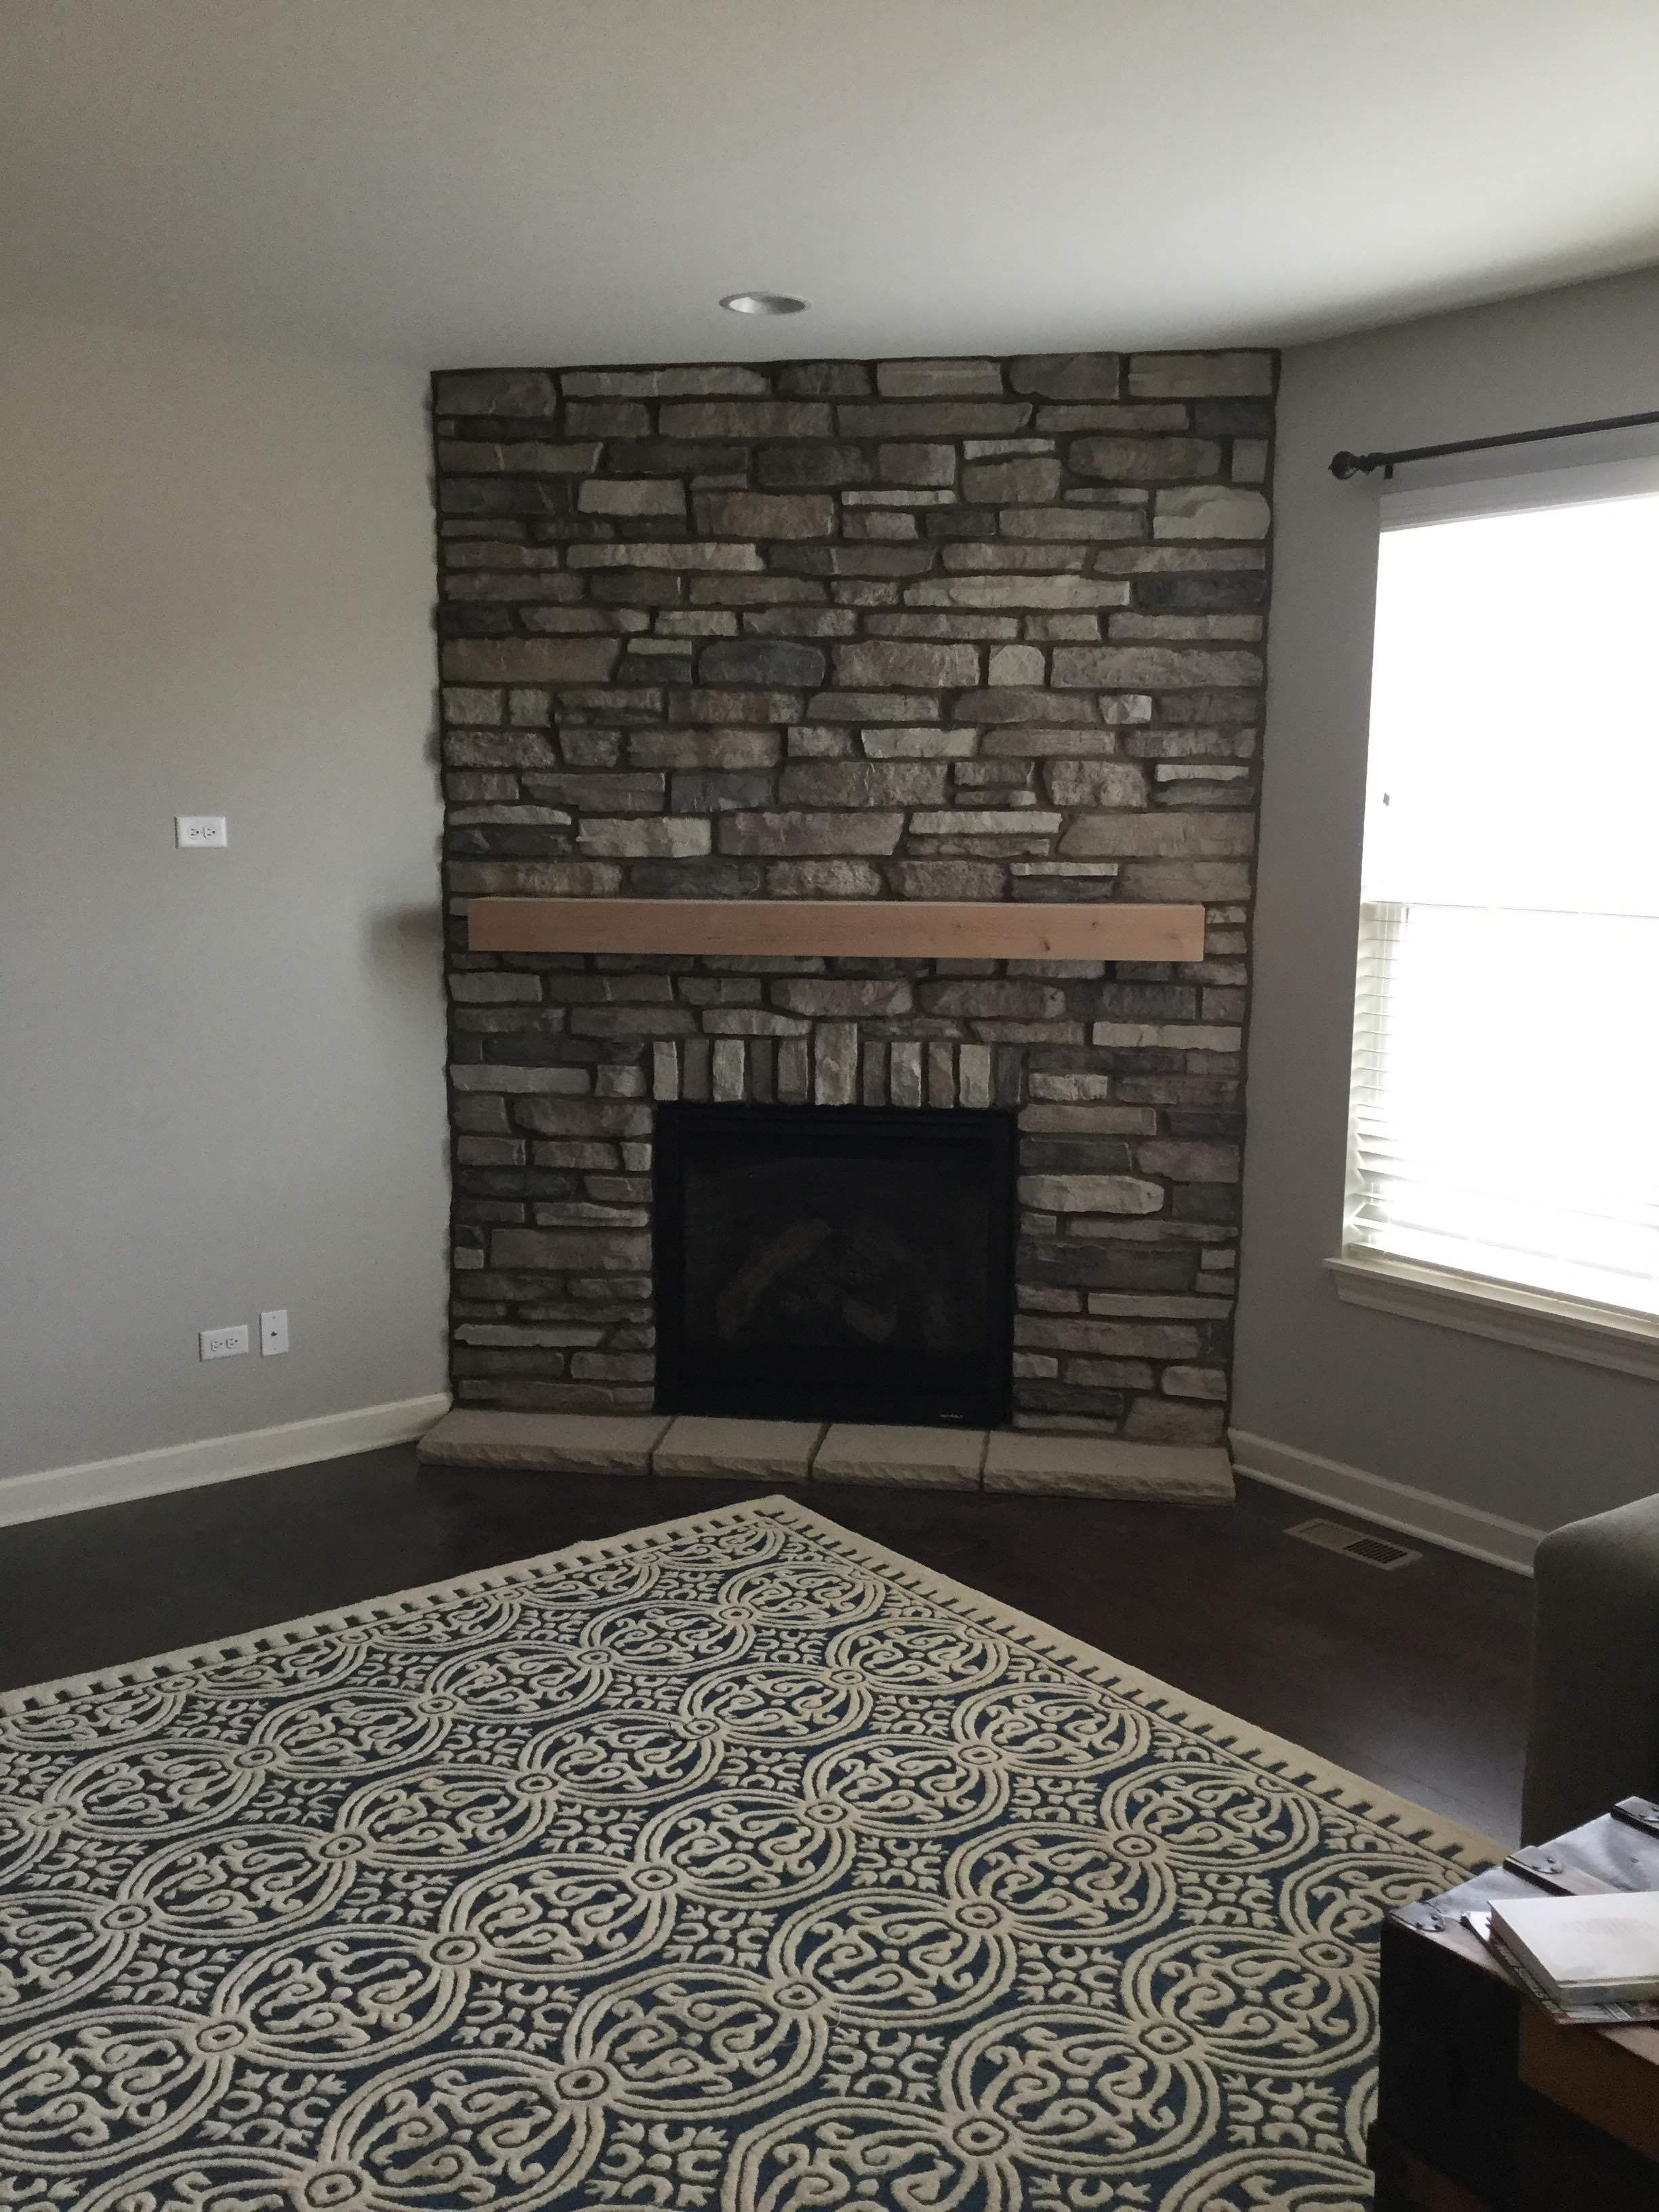 6000CLX with stone work and mantel